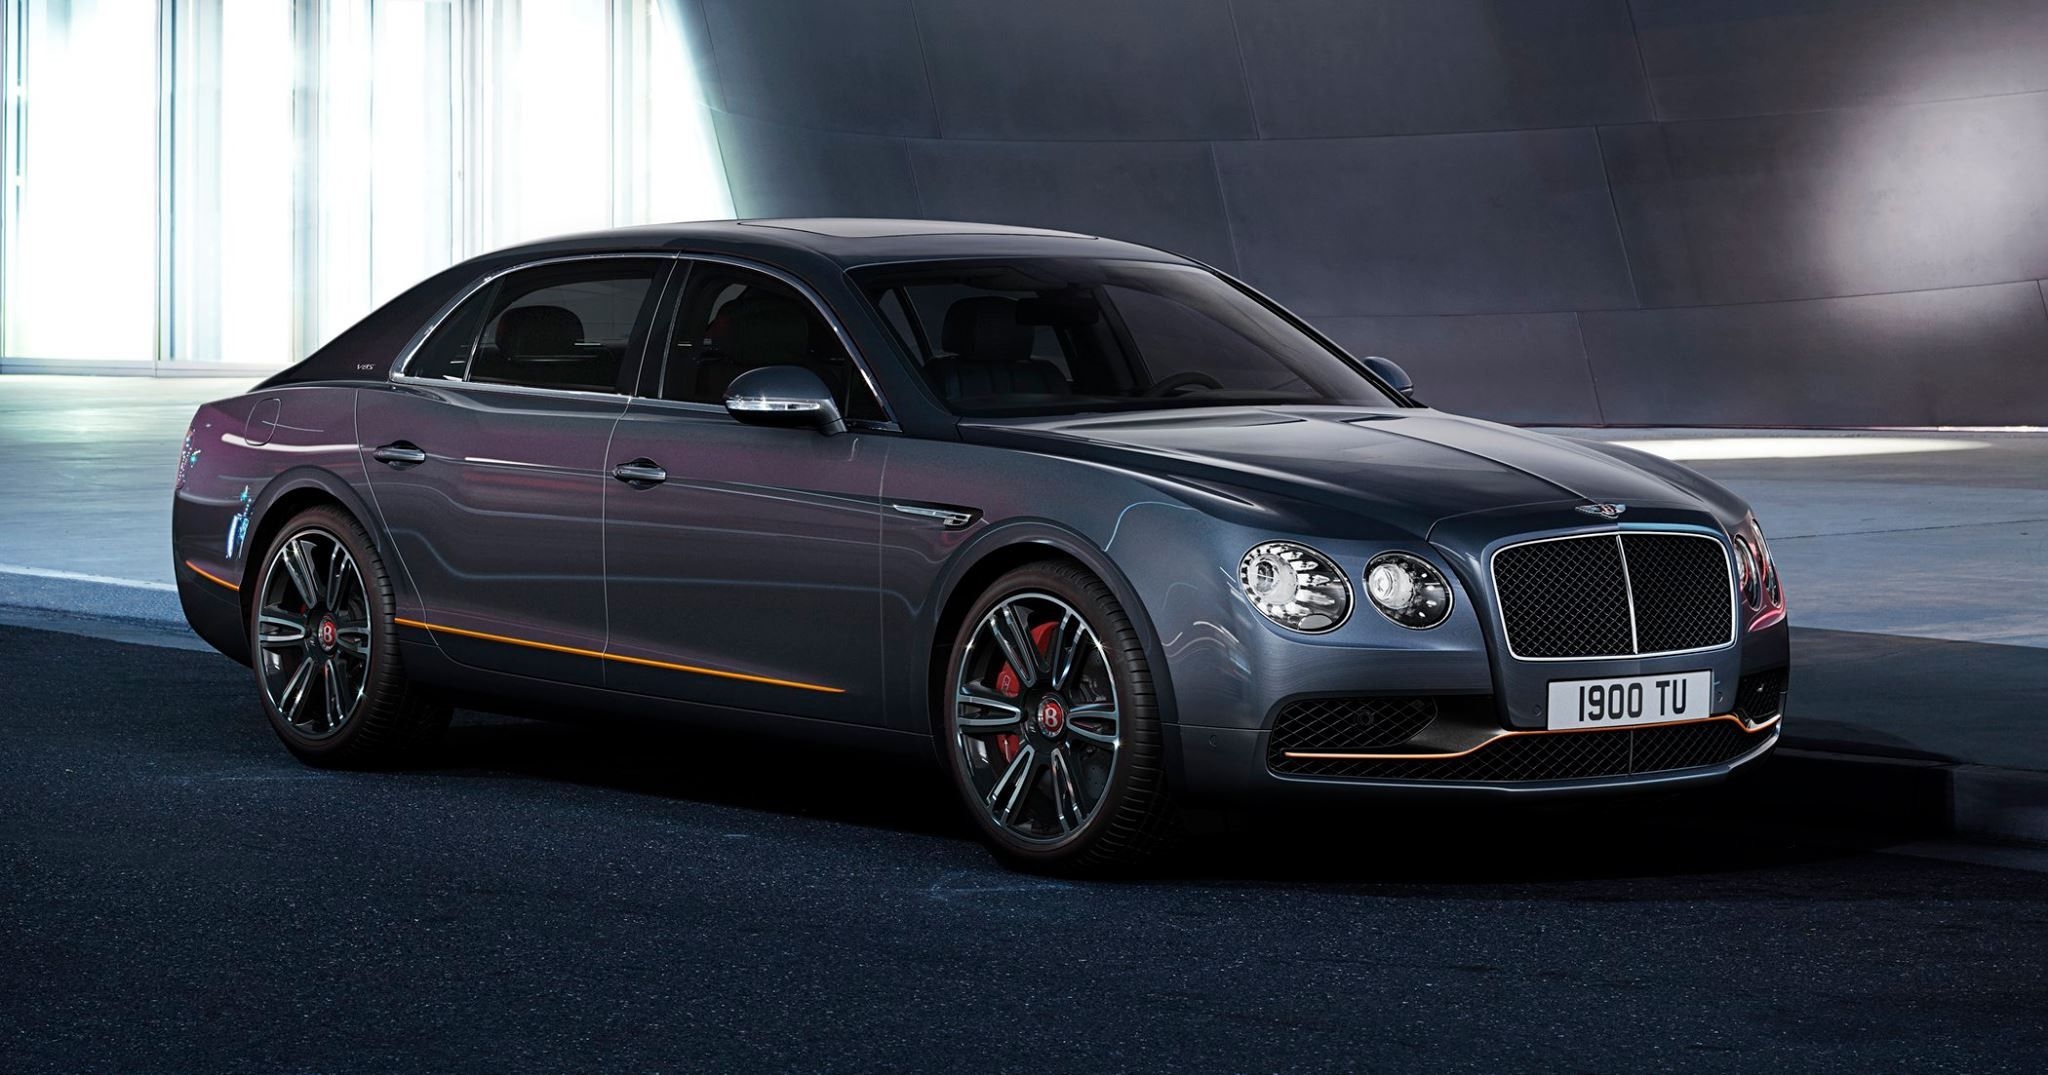 mulsanne speed cars bentley live price makes automobiles who pin ass specs review